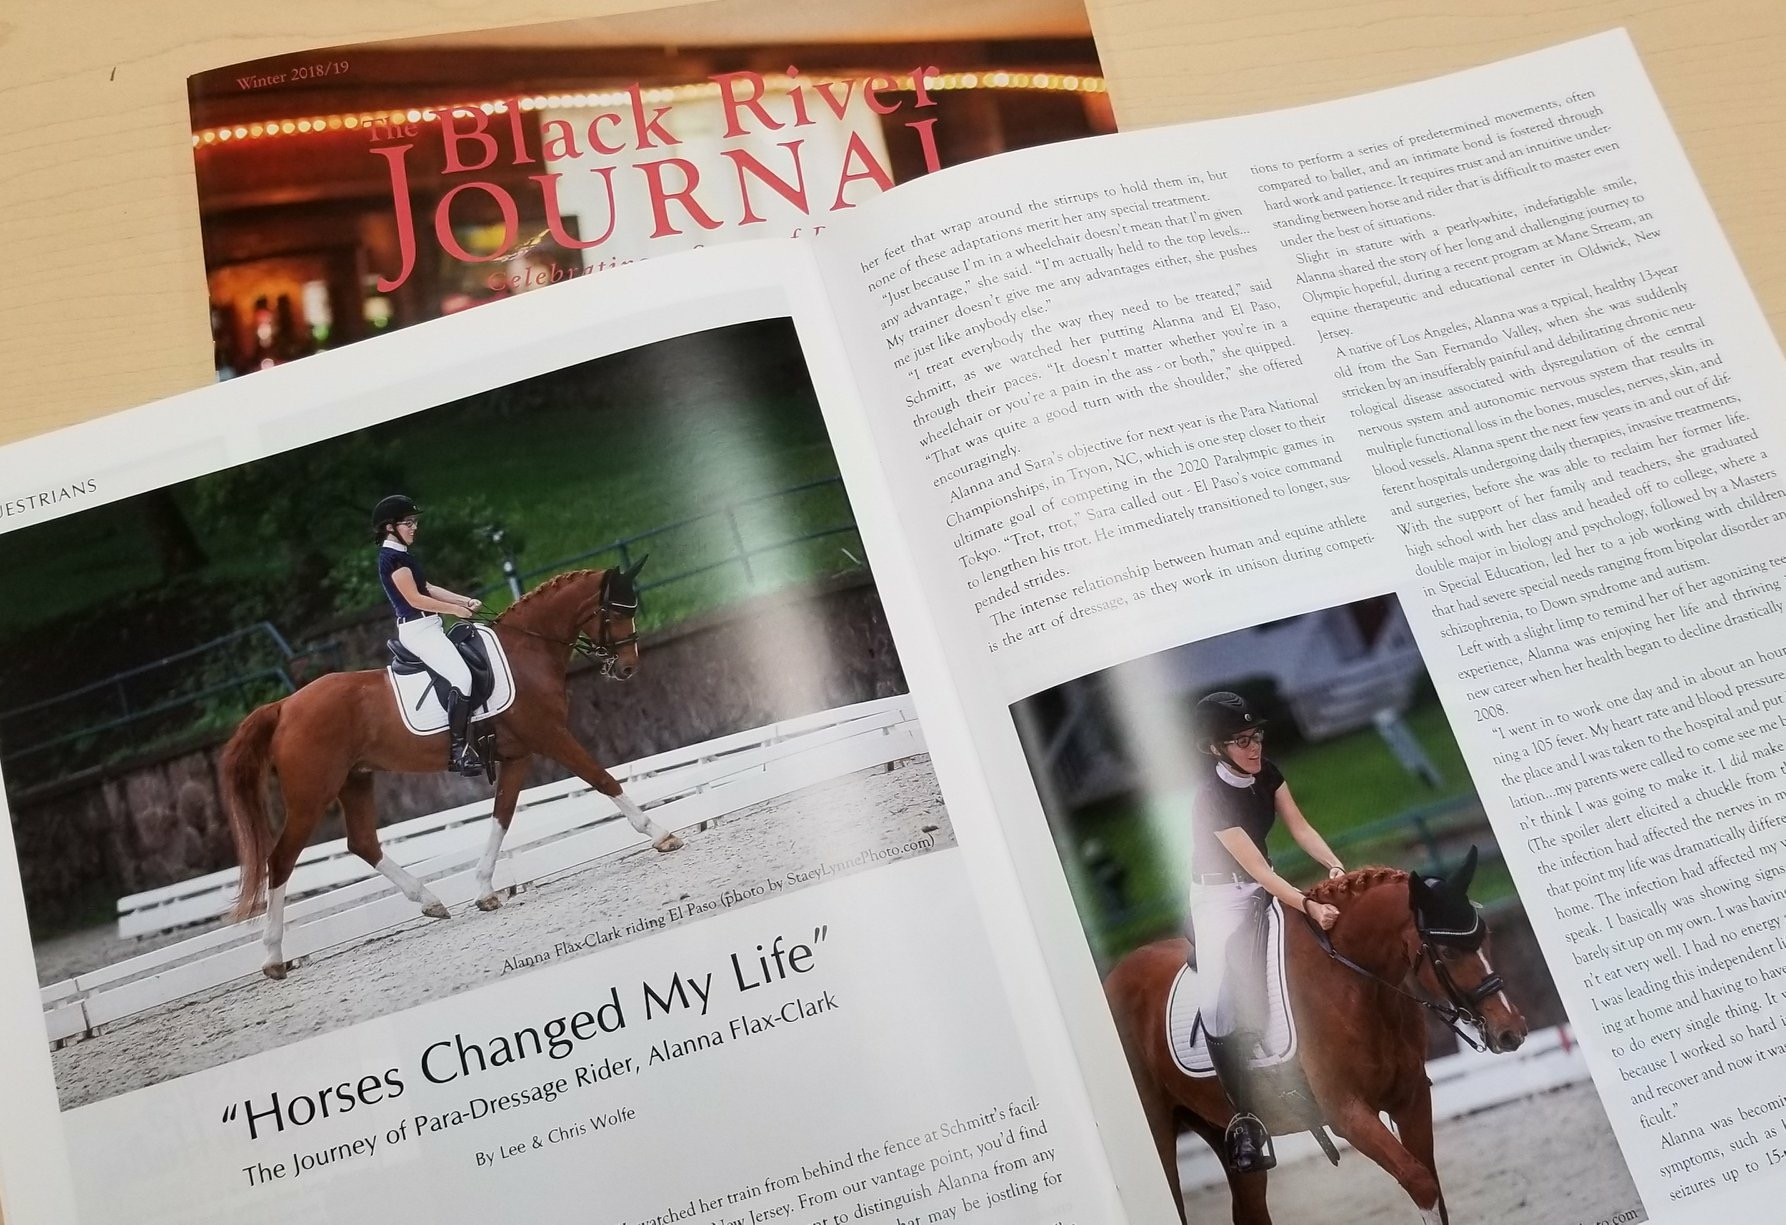 """Horses Changed My Life""  The Journey of Para-Dressage Rider, Alanna Flax-Clark"